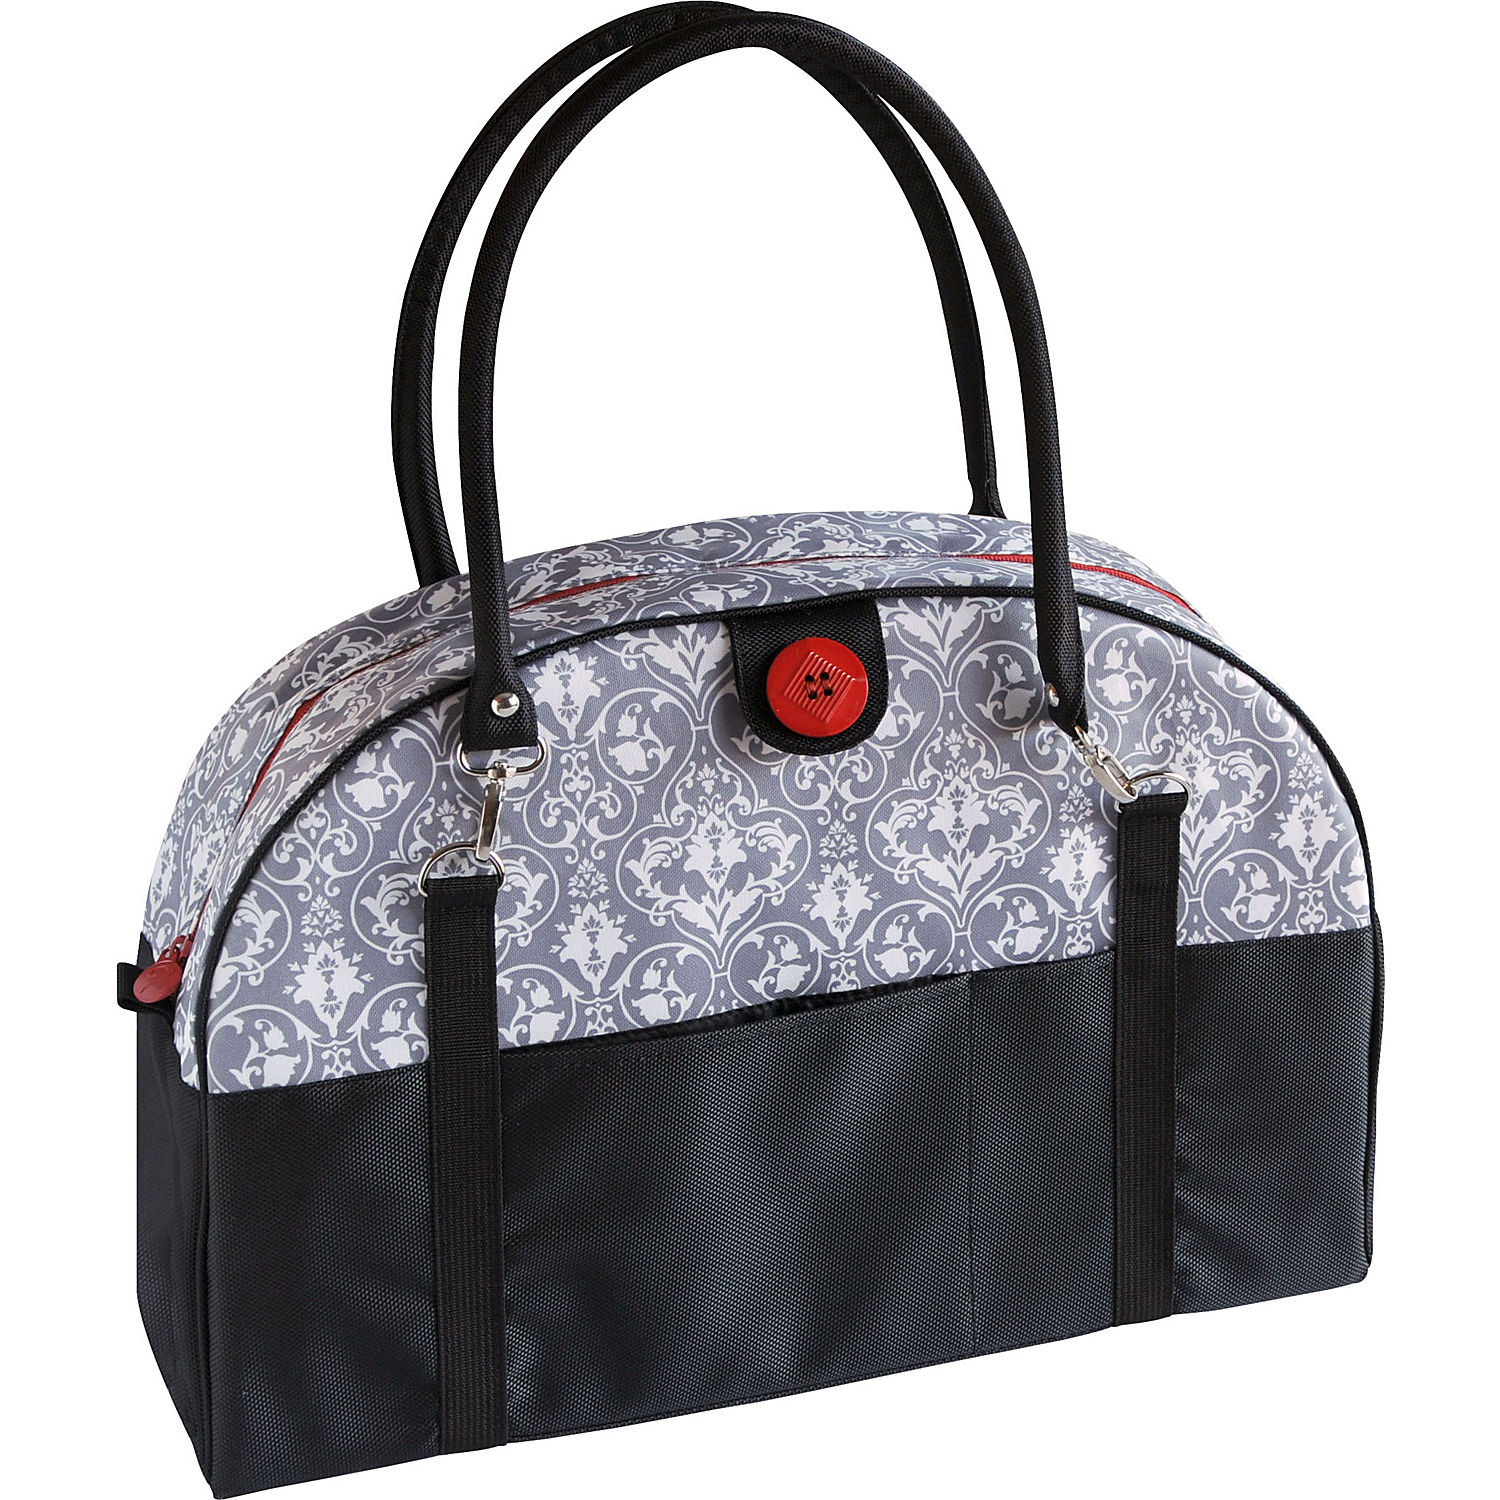 2 red hens coop carry all diaper bag. Black Bedroom Furniture Sets. Home Design Ideas